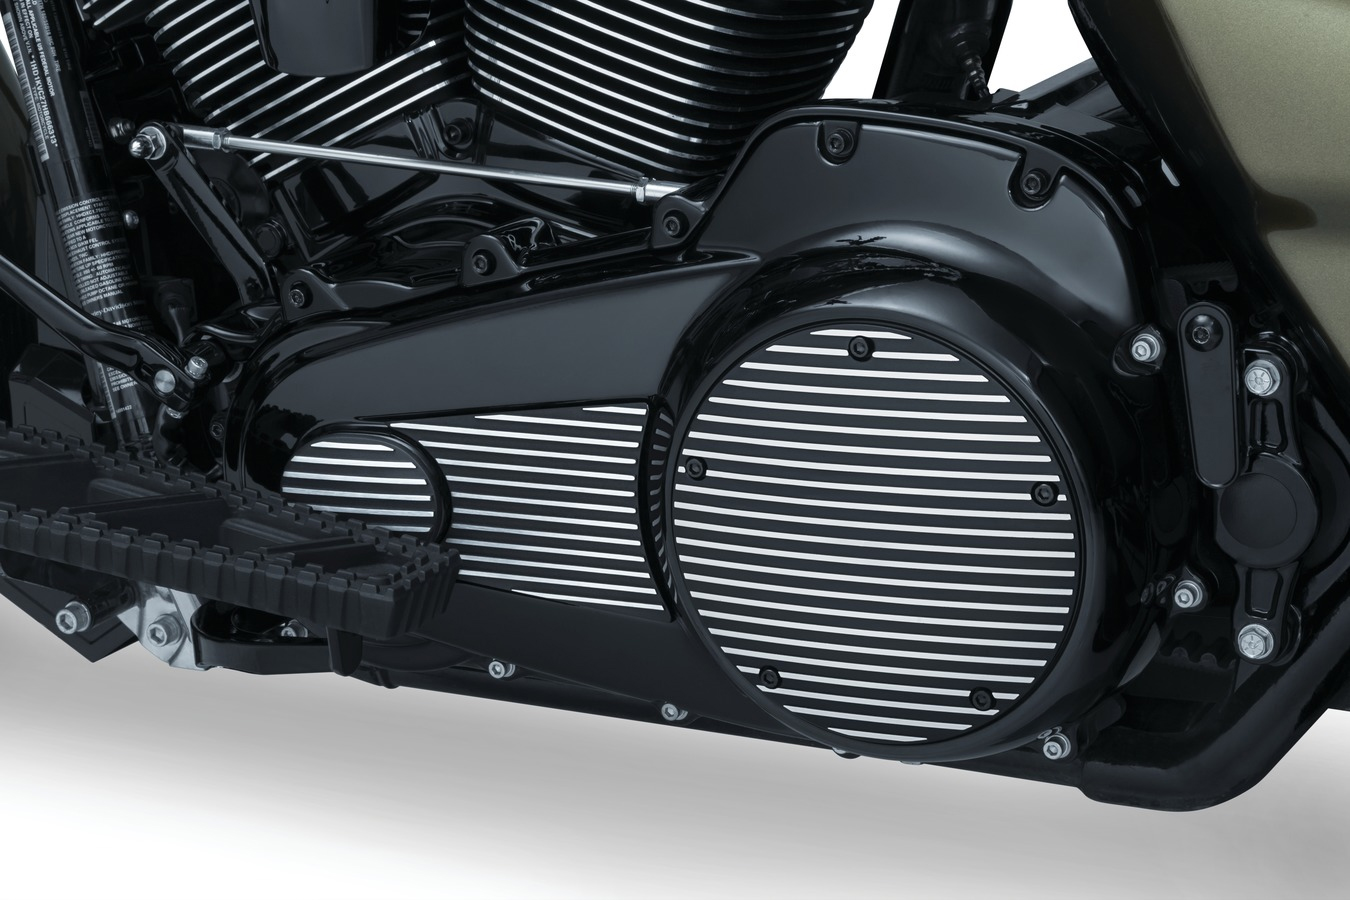 Kuryakyn Introduces New Finned Collection for H-D